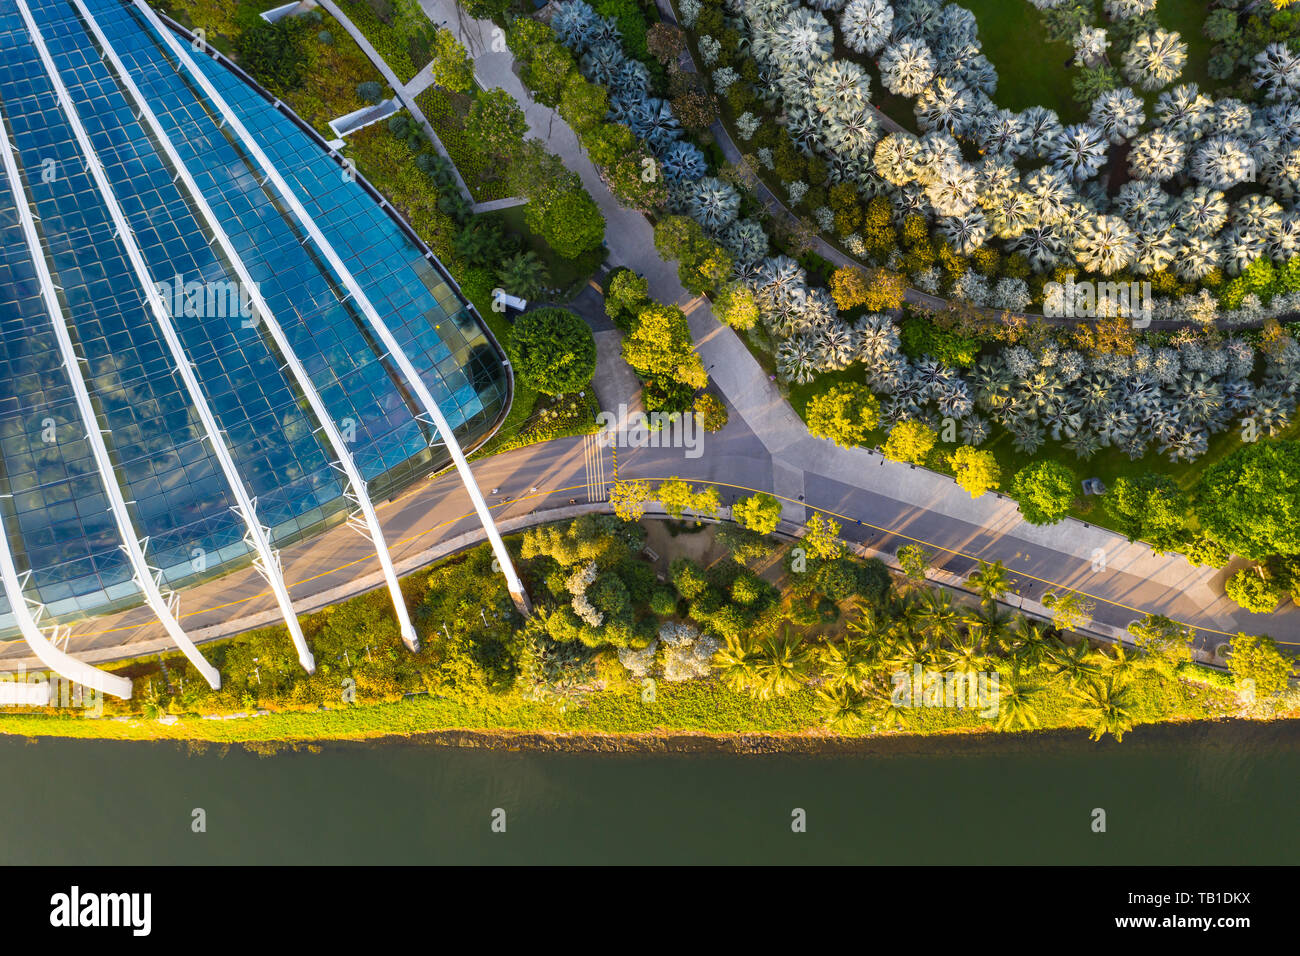 Slow travel at Gardens by the Bay - aerial perspective in the morning, Singapore - Stock Image